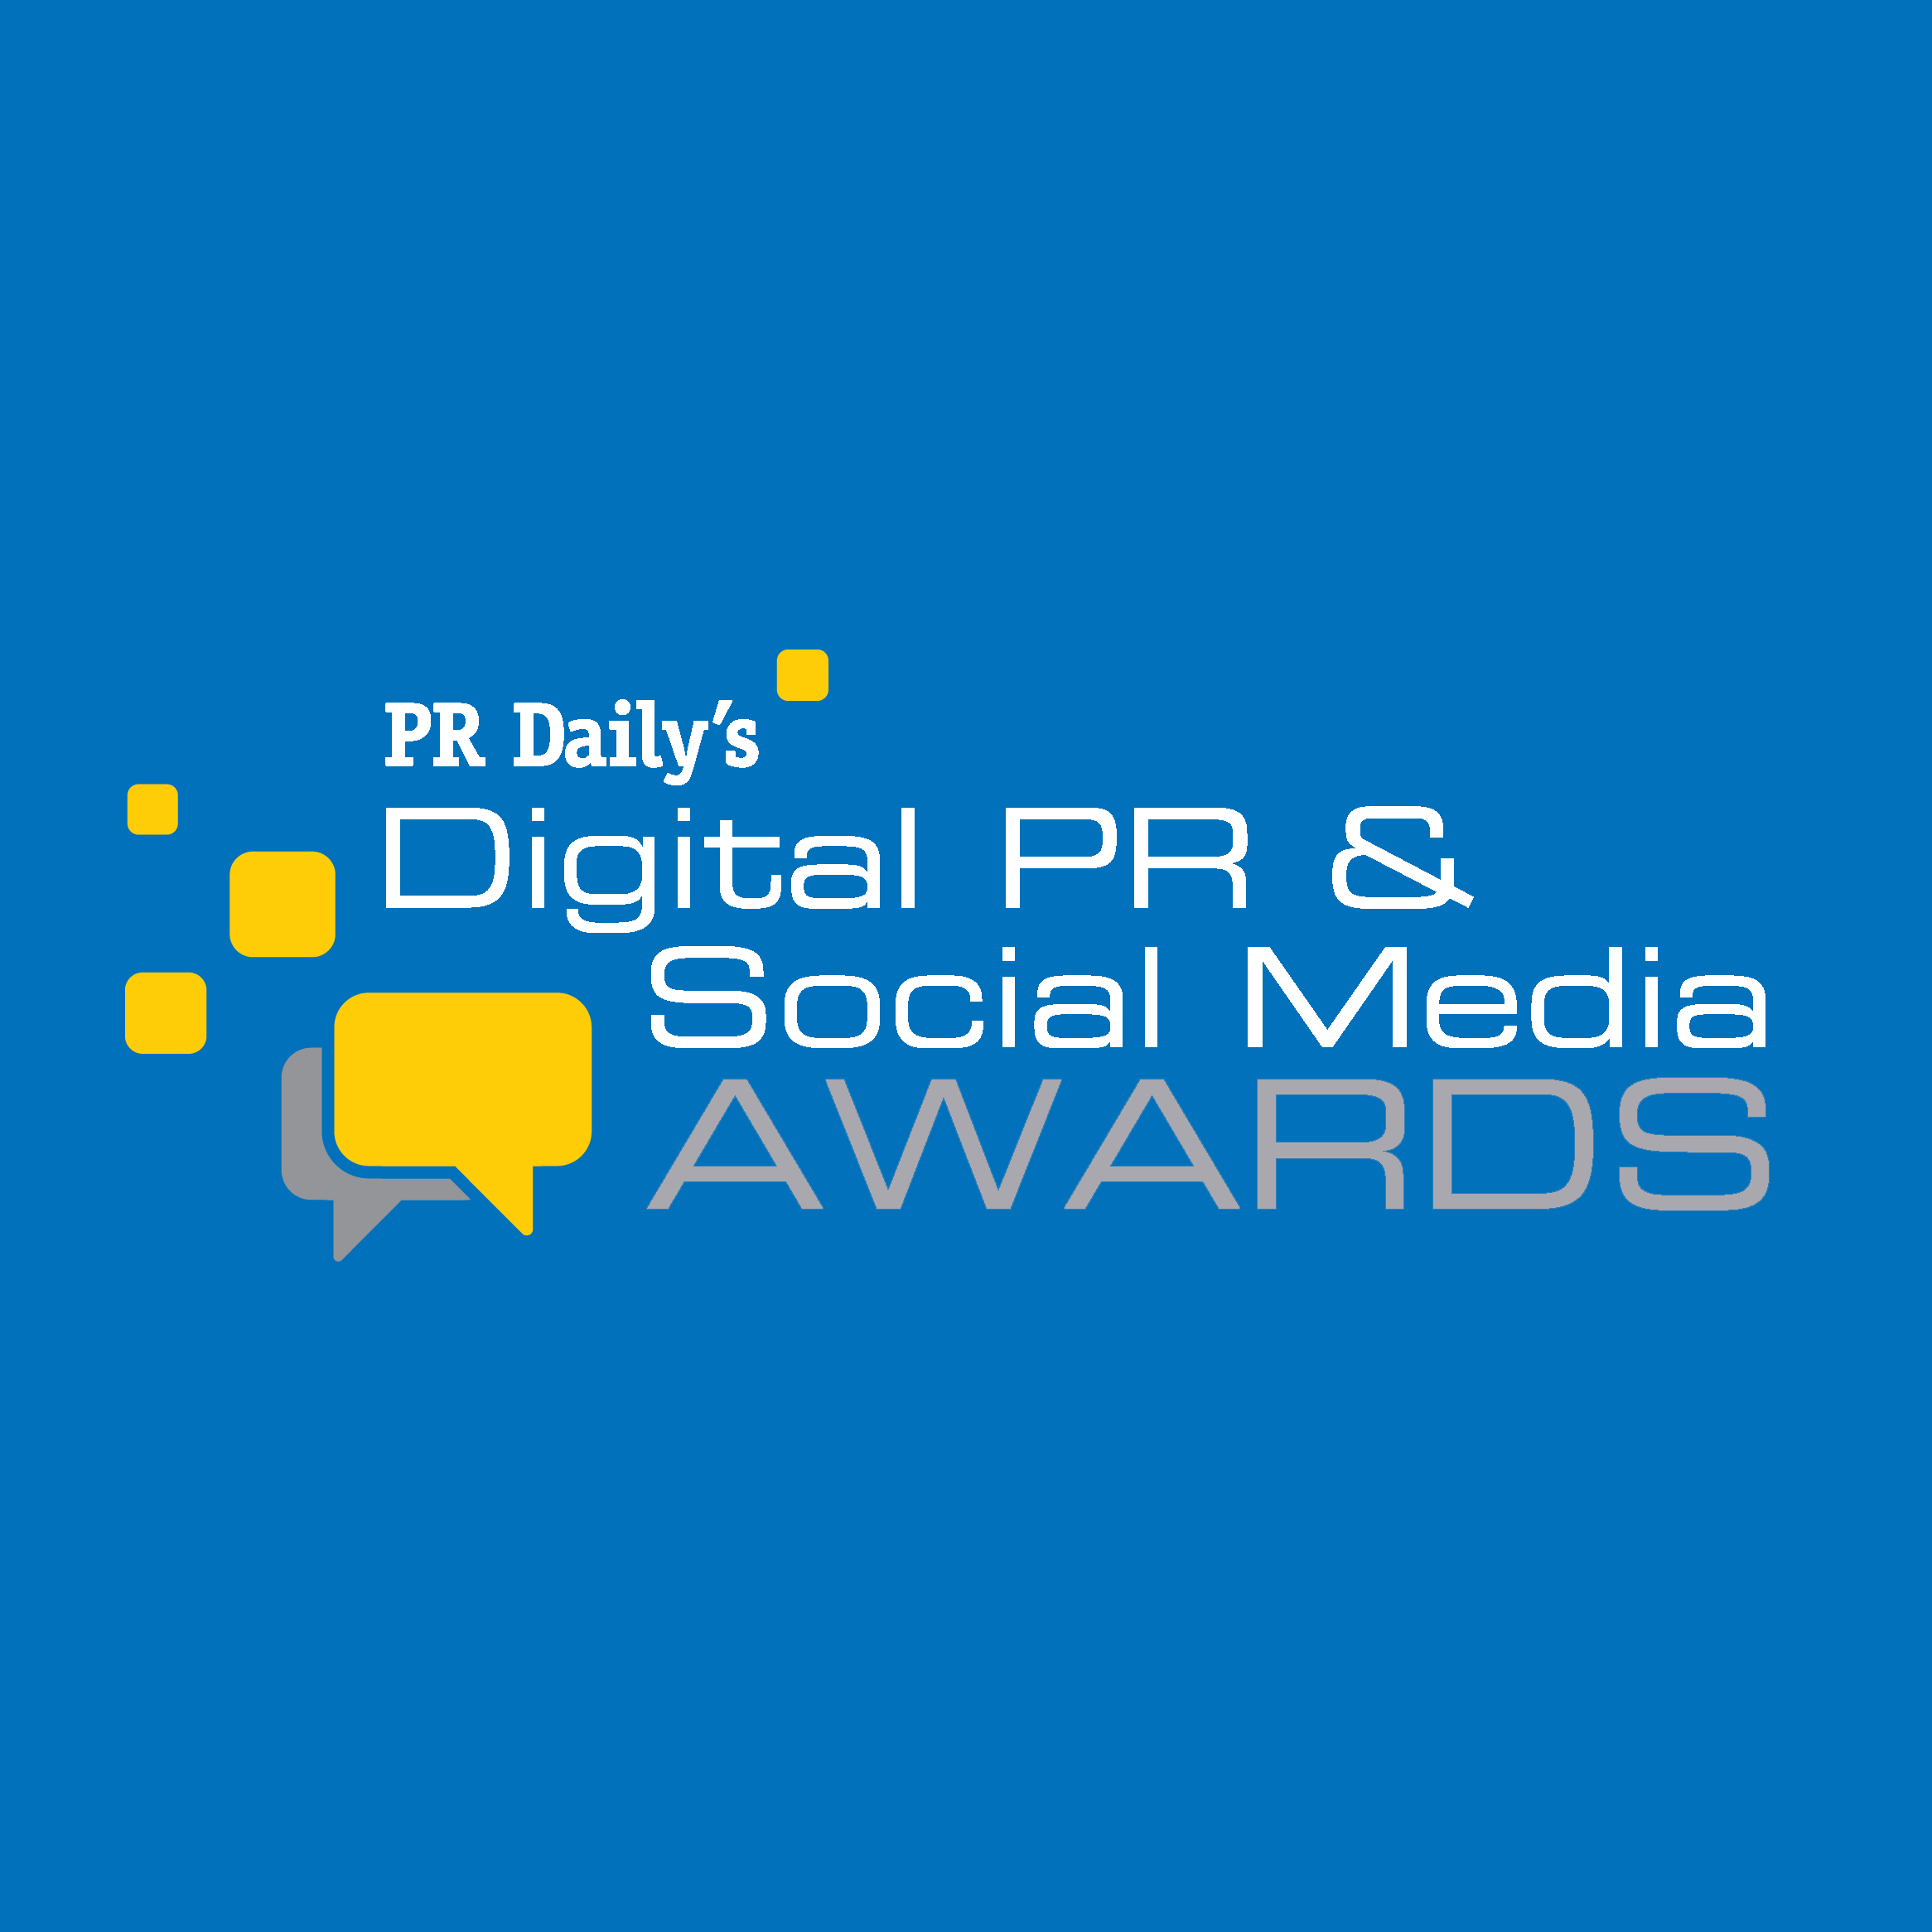 (PR Daily) PR Daily's Digital PR & Social Media Awards